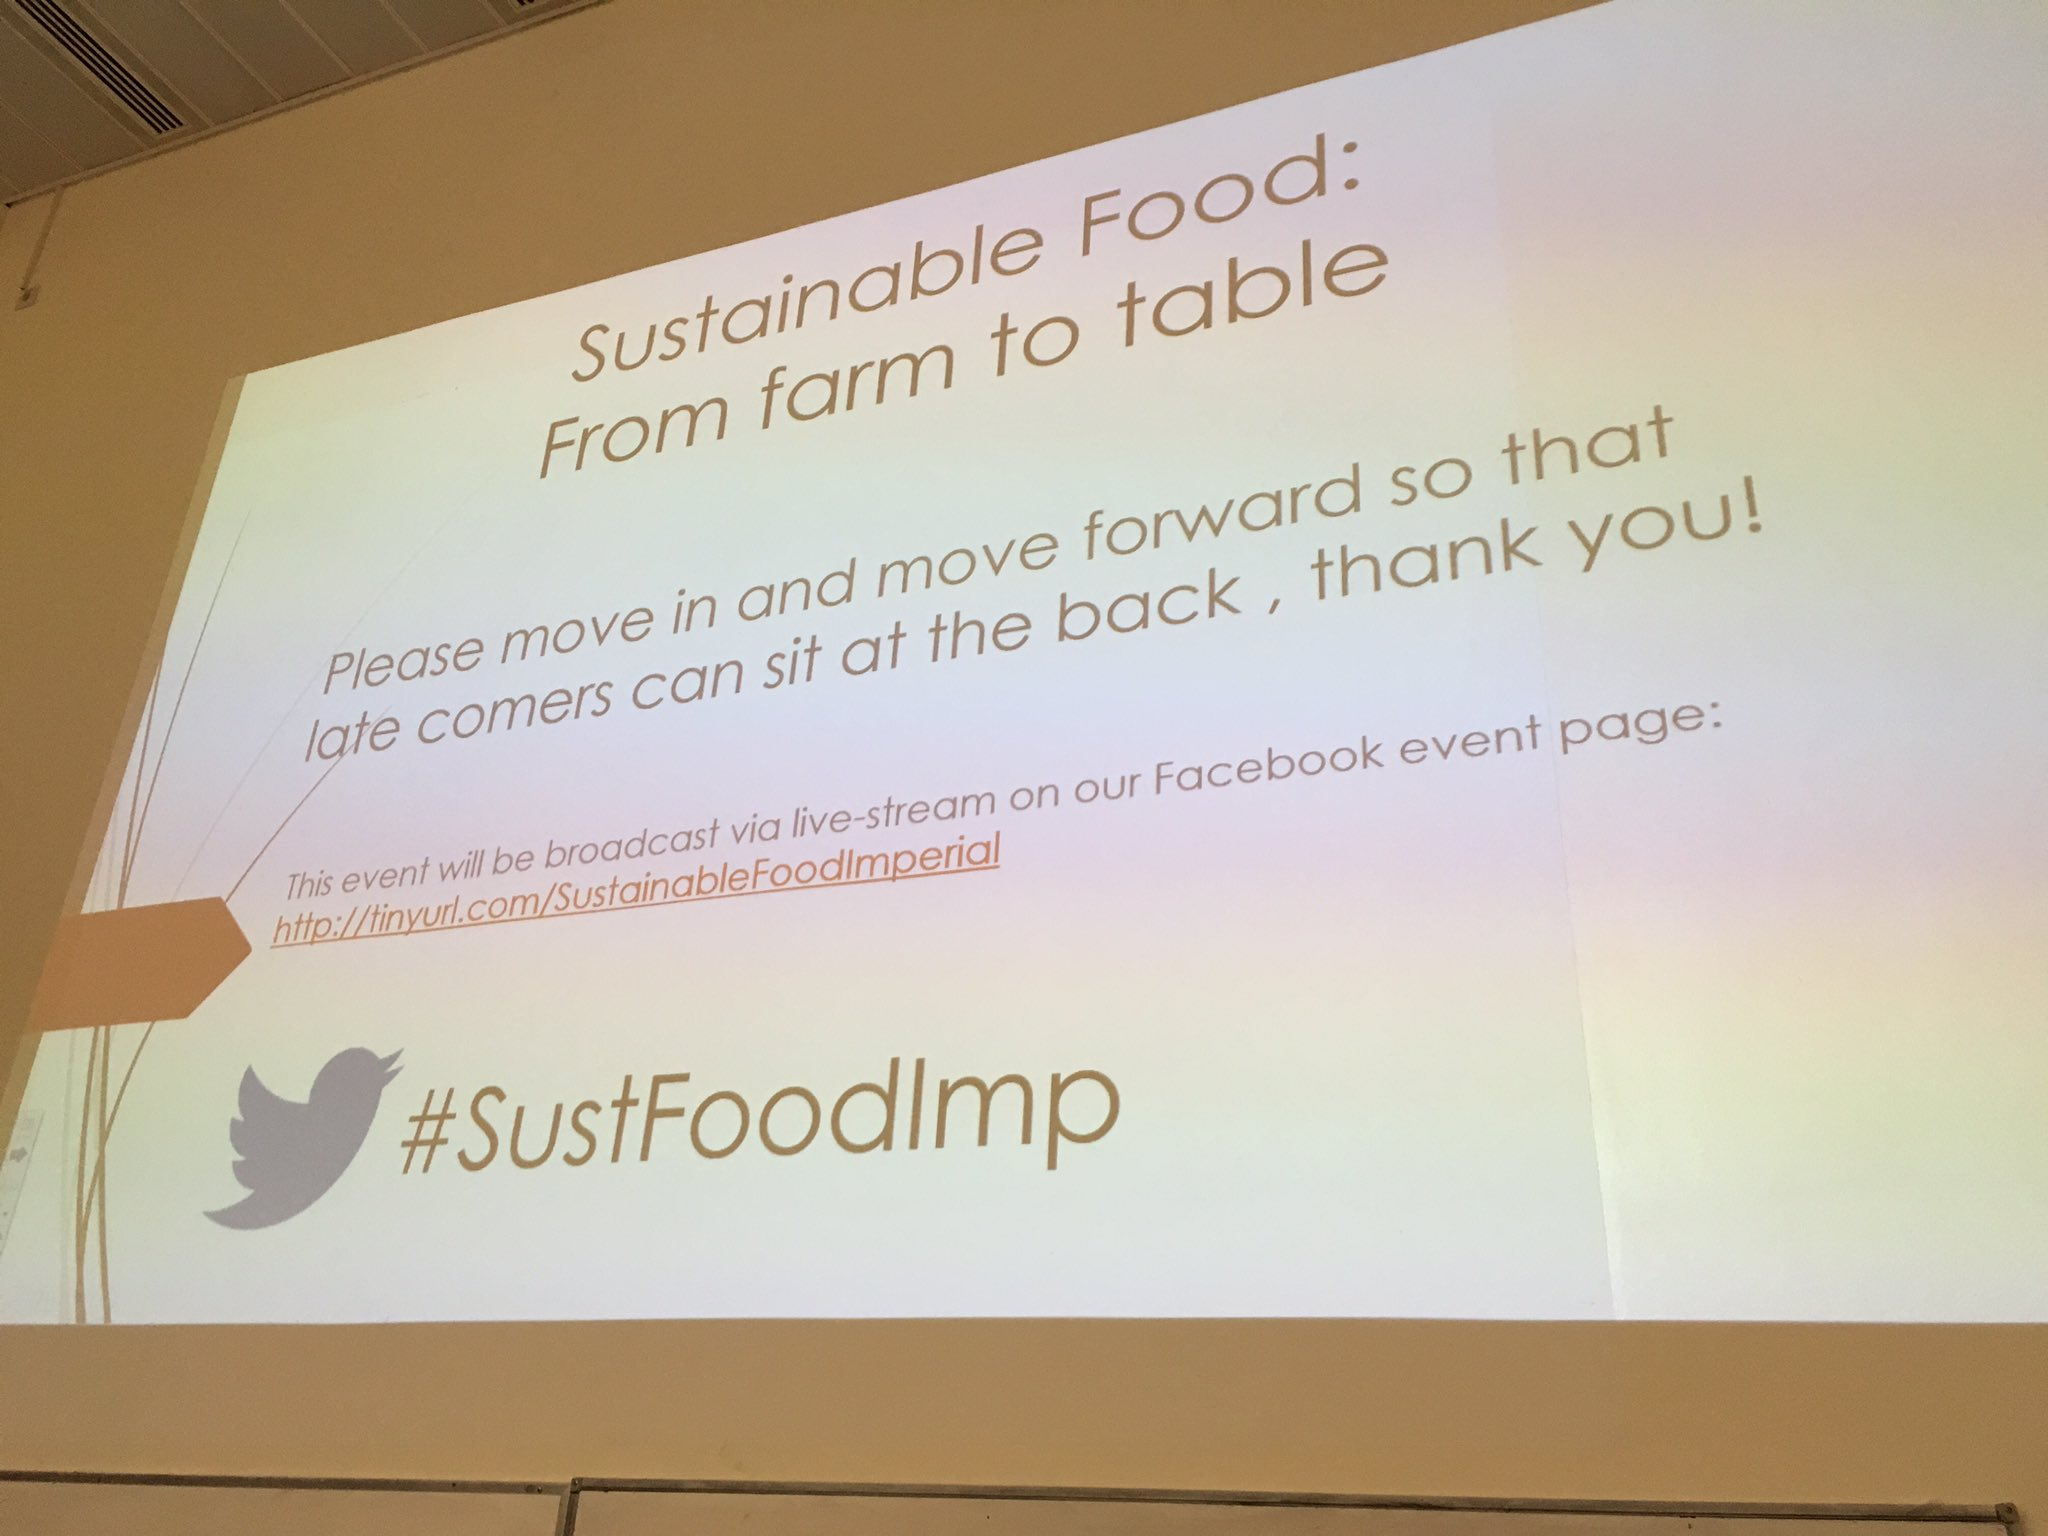 Our exec director @dan_crossley speaking shortly on sustainable food and food ethics #SustFoodImp https://t.co/9vkmAeJn5I